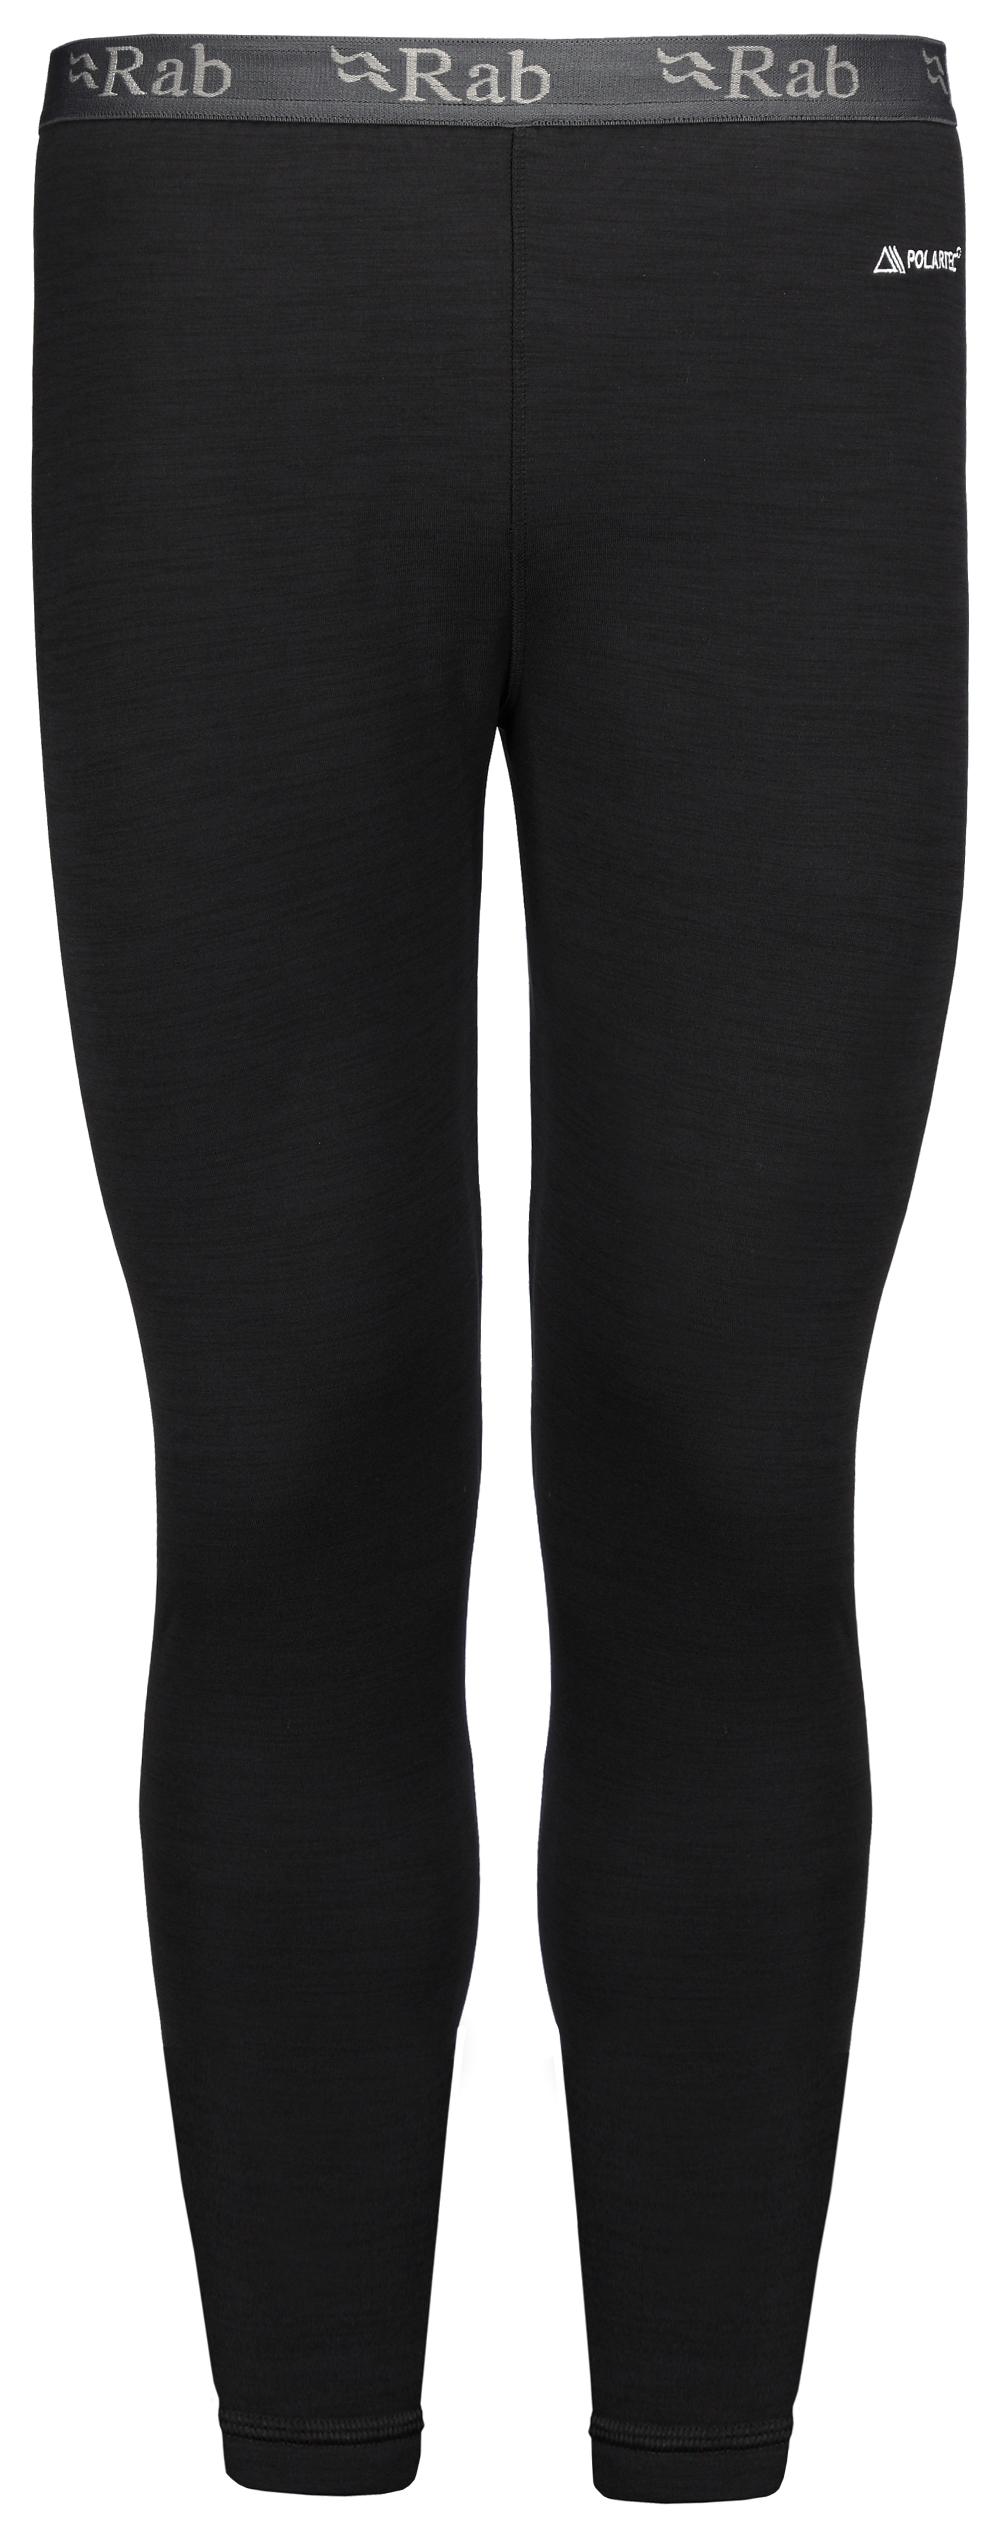 5ce6a4144f8cd3 Rab Power Stretch Pro Pants - Mens with Free S&H — CampSaver